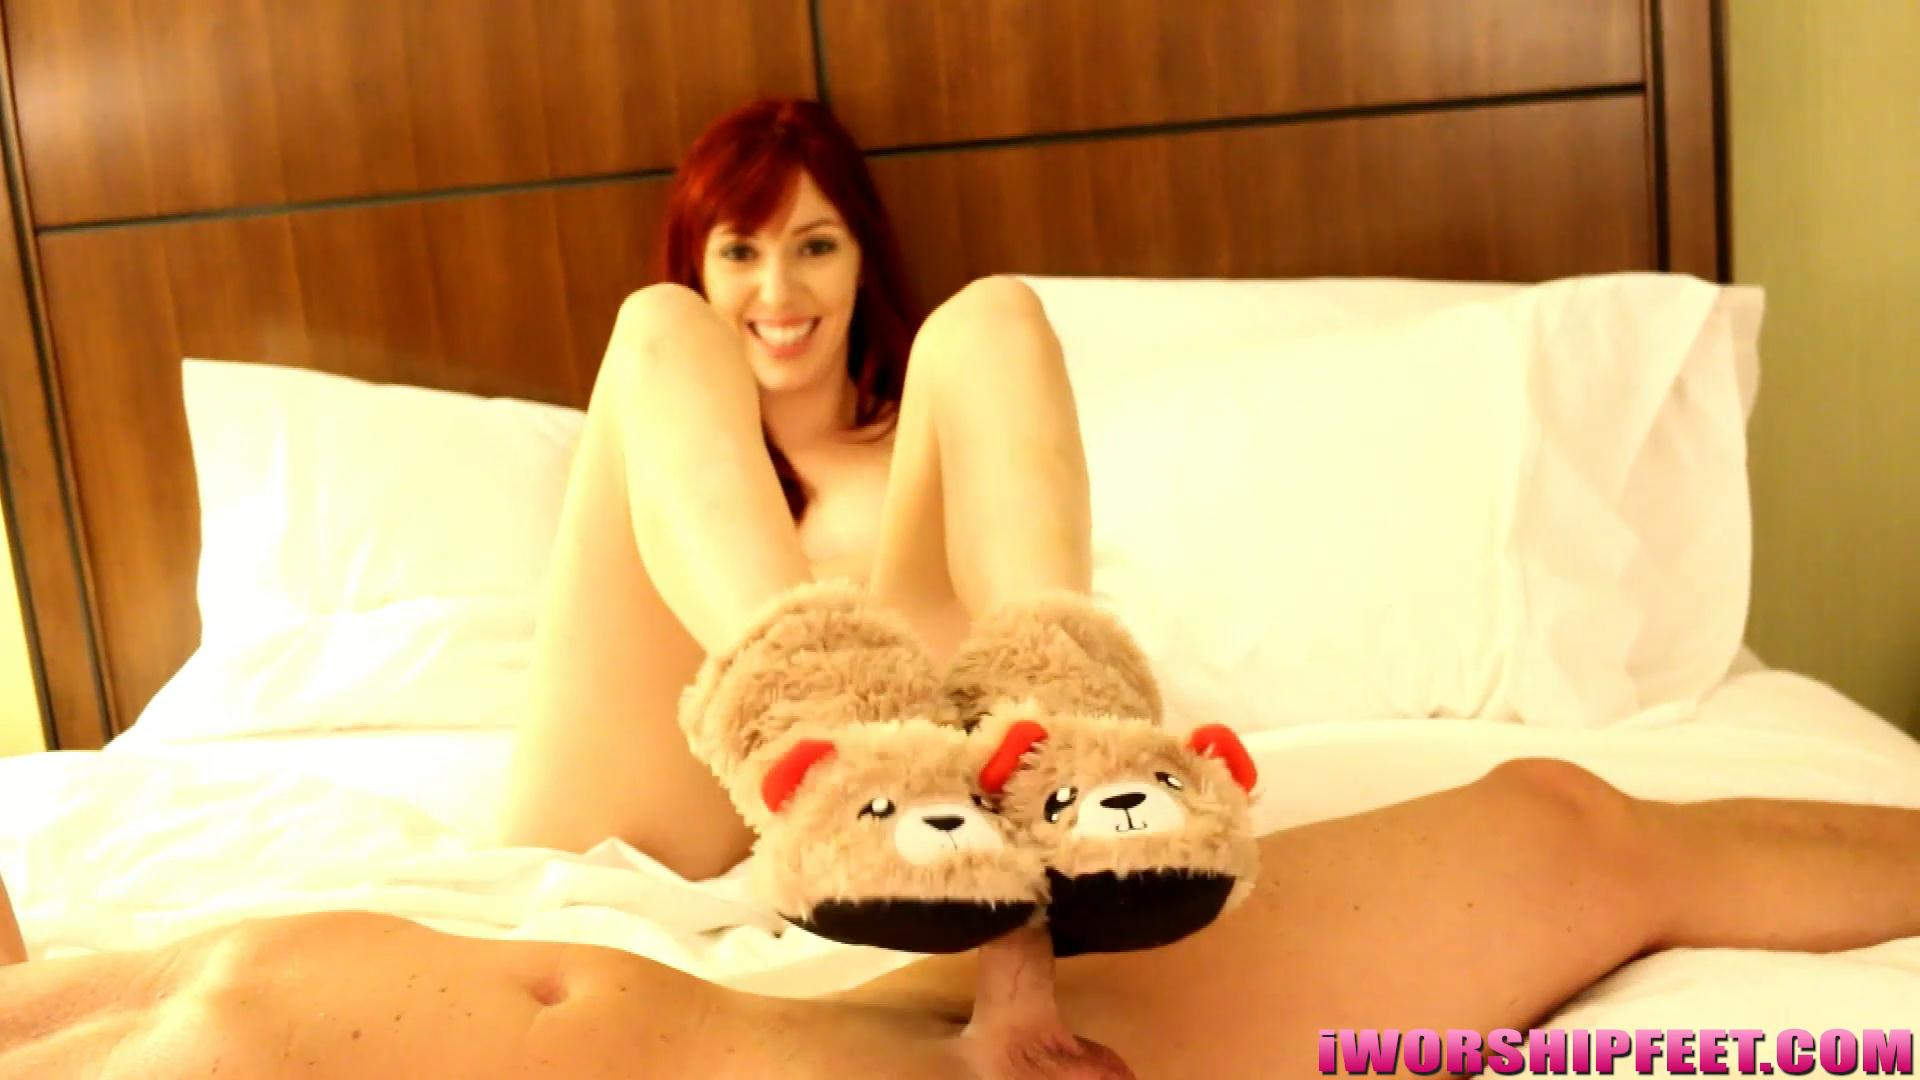 A Hot Redhead With Big Feet – Barely Legal Foot Jobs – Lauren Phillips